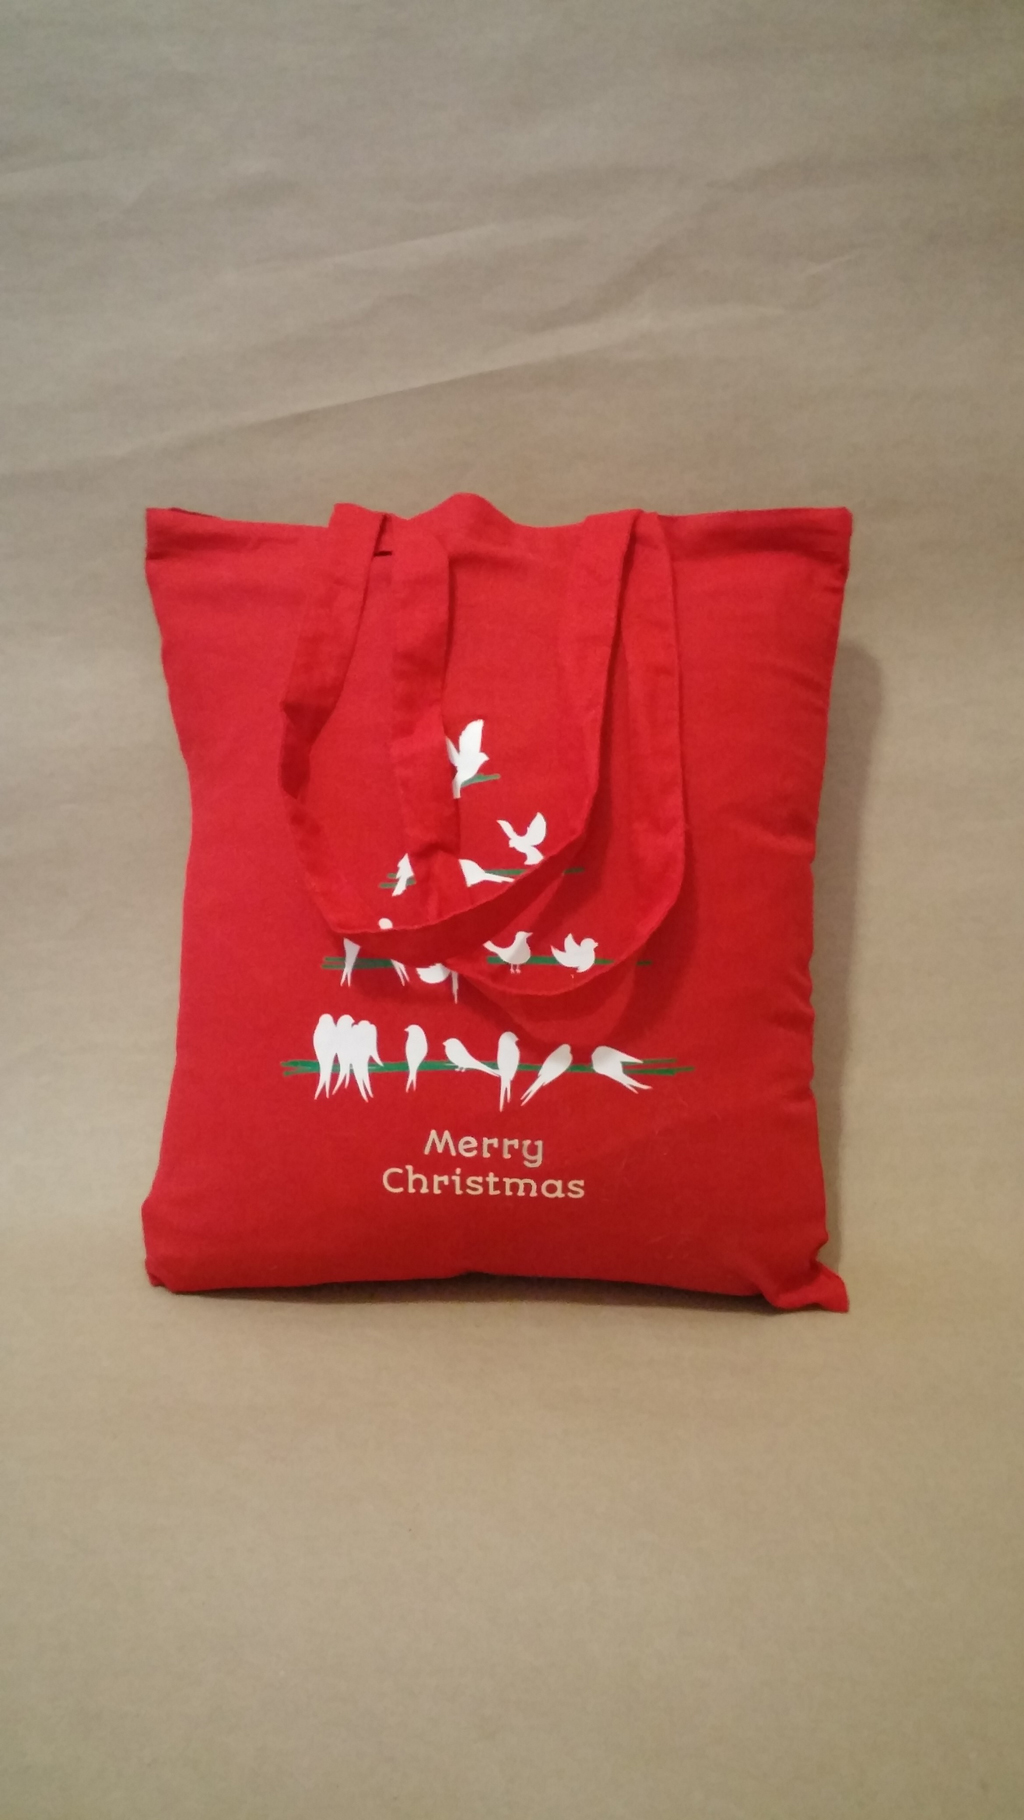 Shopper Bag With Christmas Heat Transfer Print